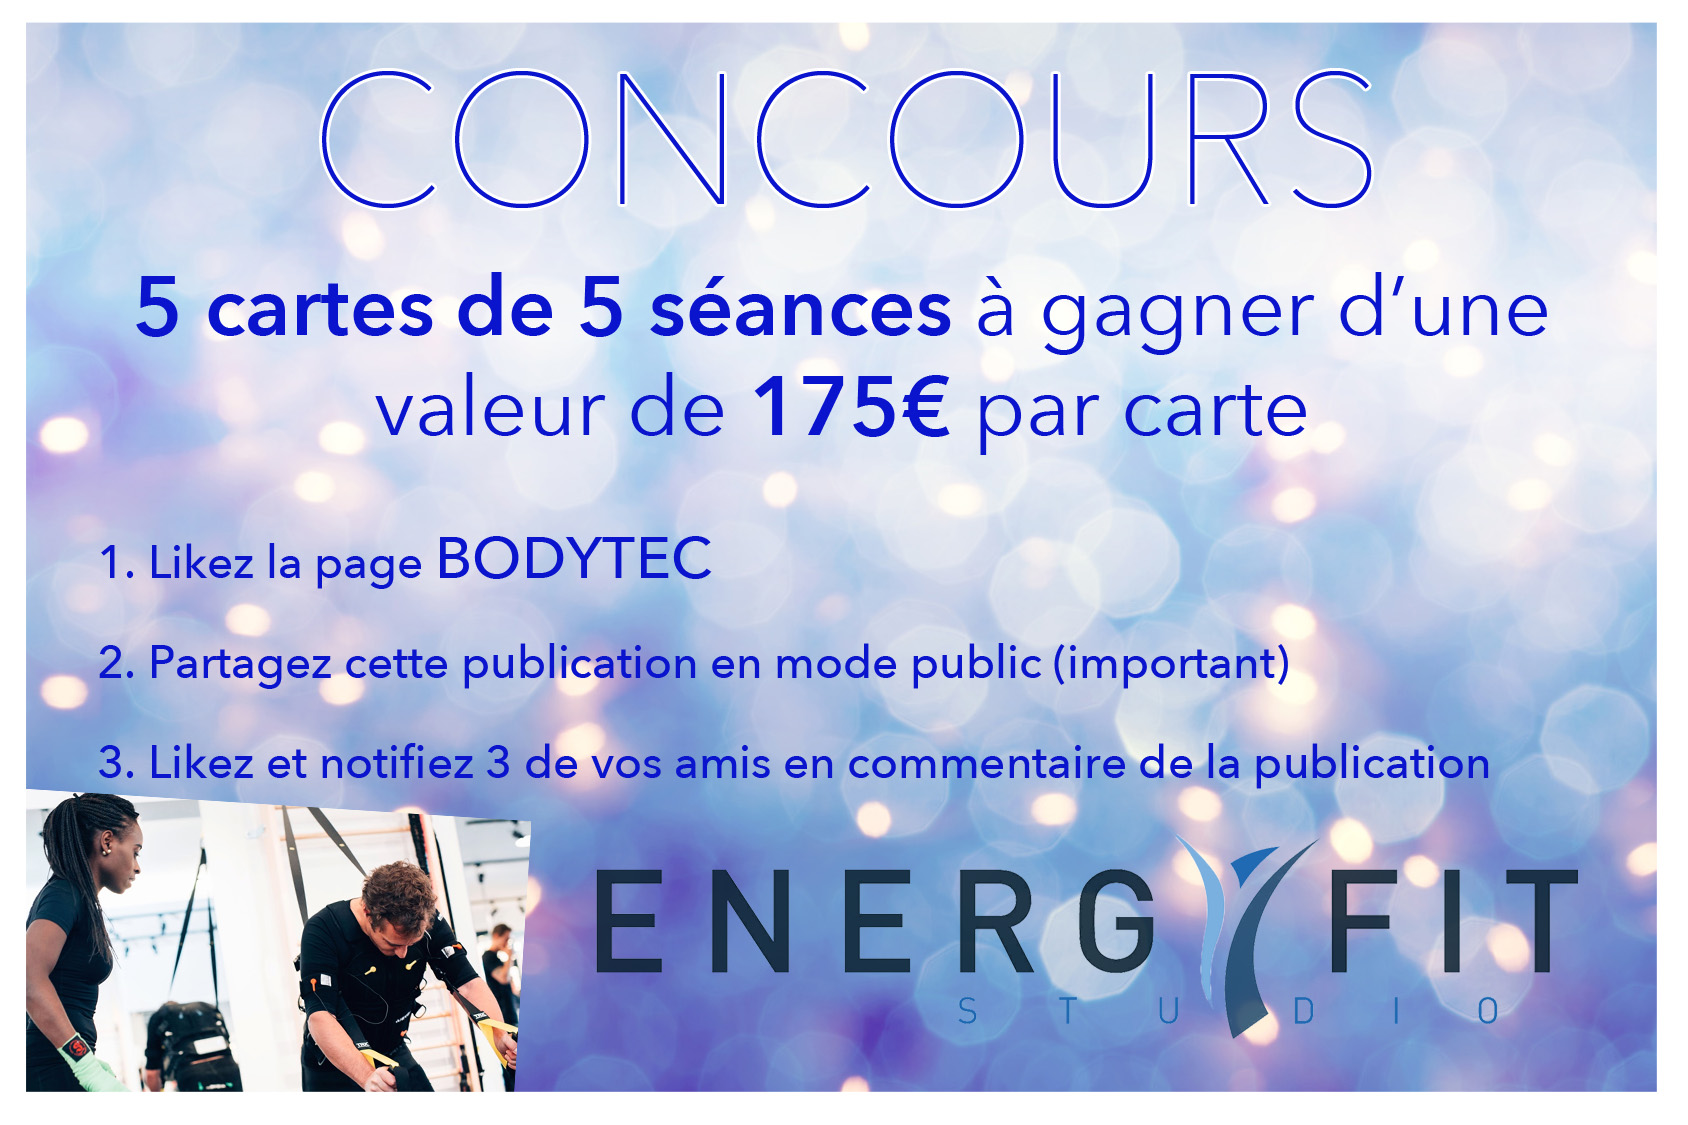 ! ! CONCOURS ENERGYFIT STUDIO by BODYTEC ! !